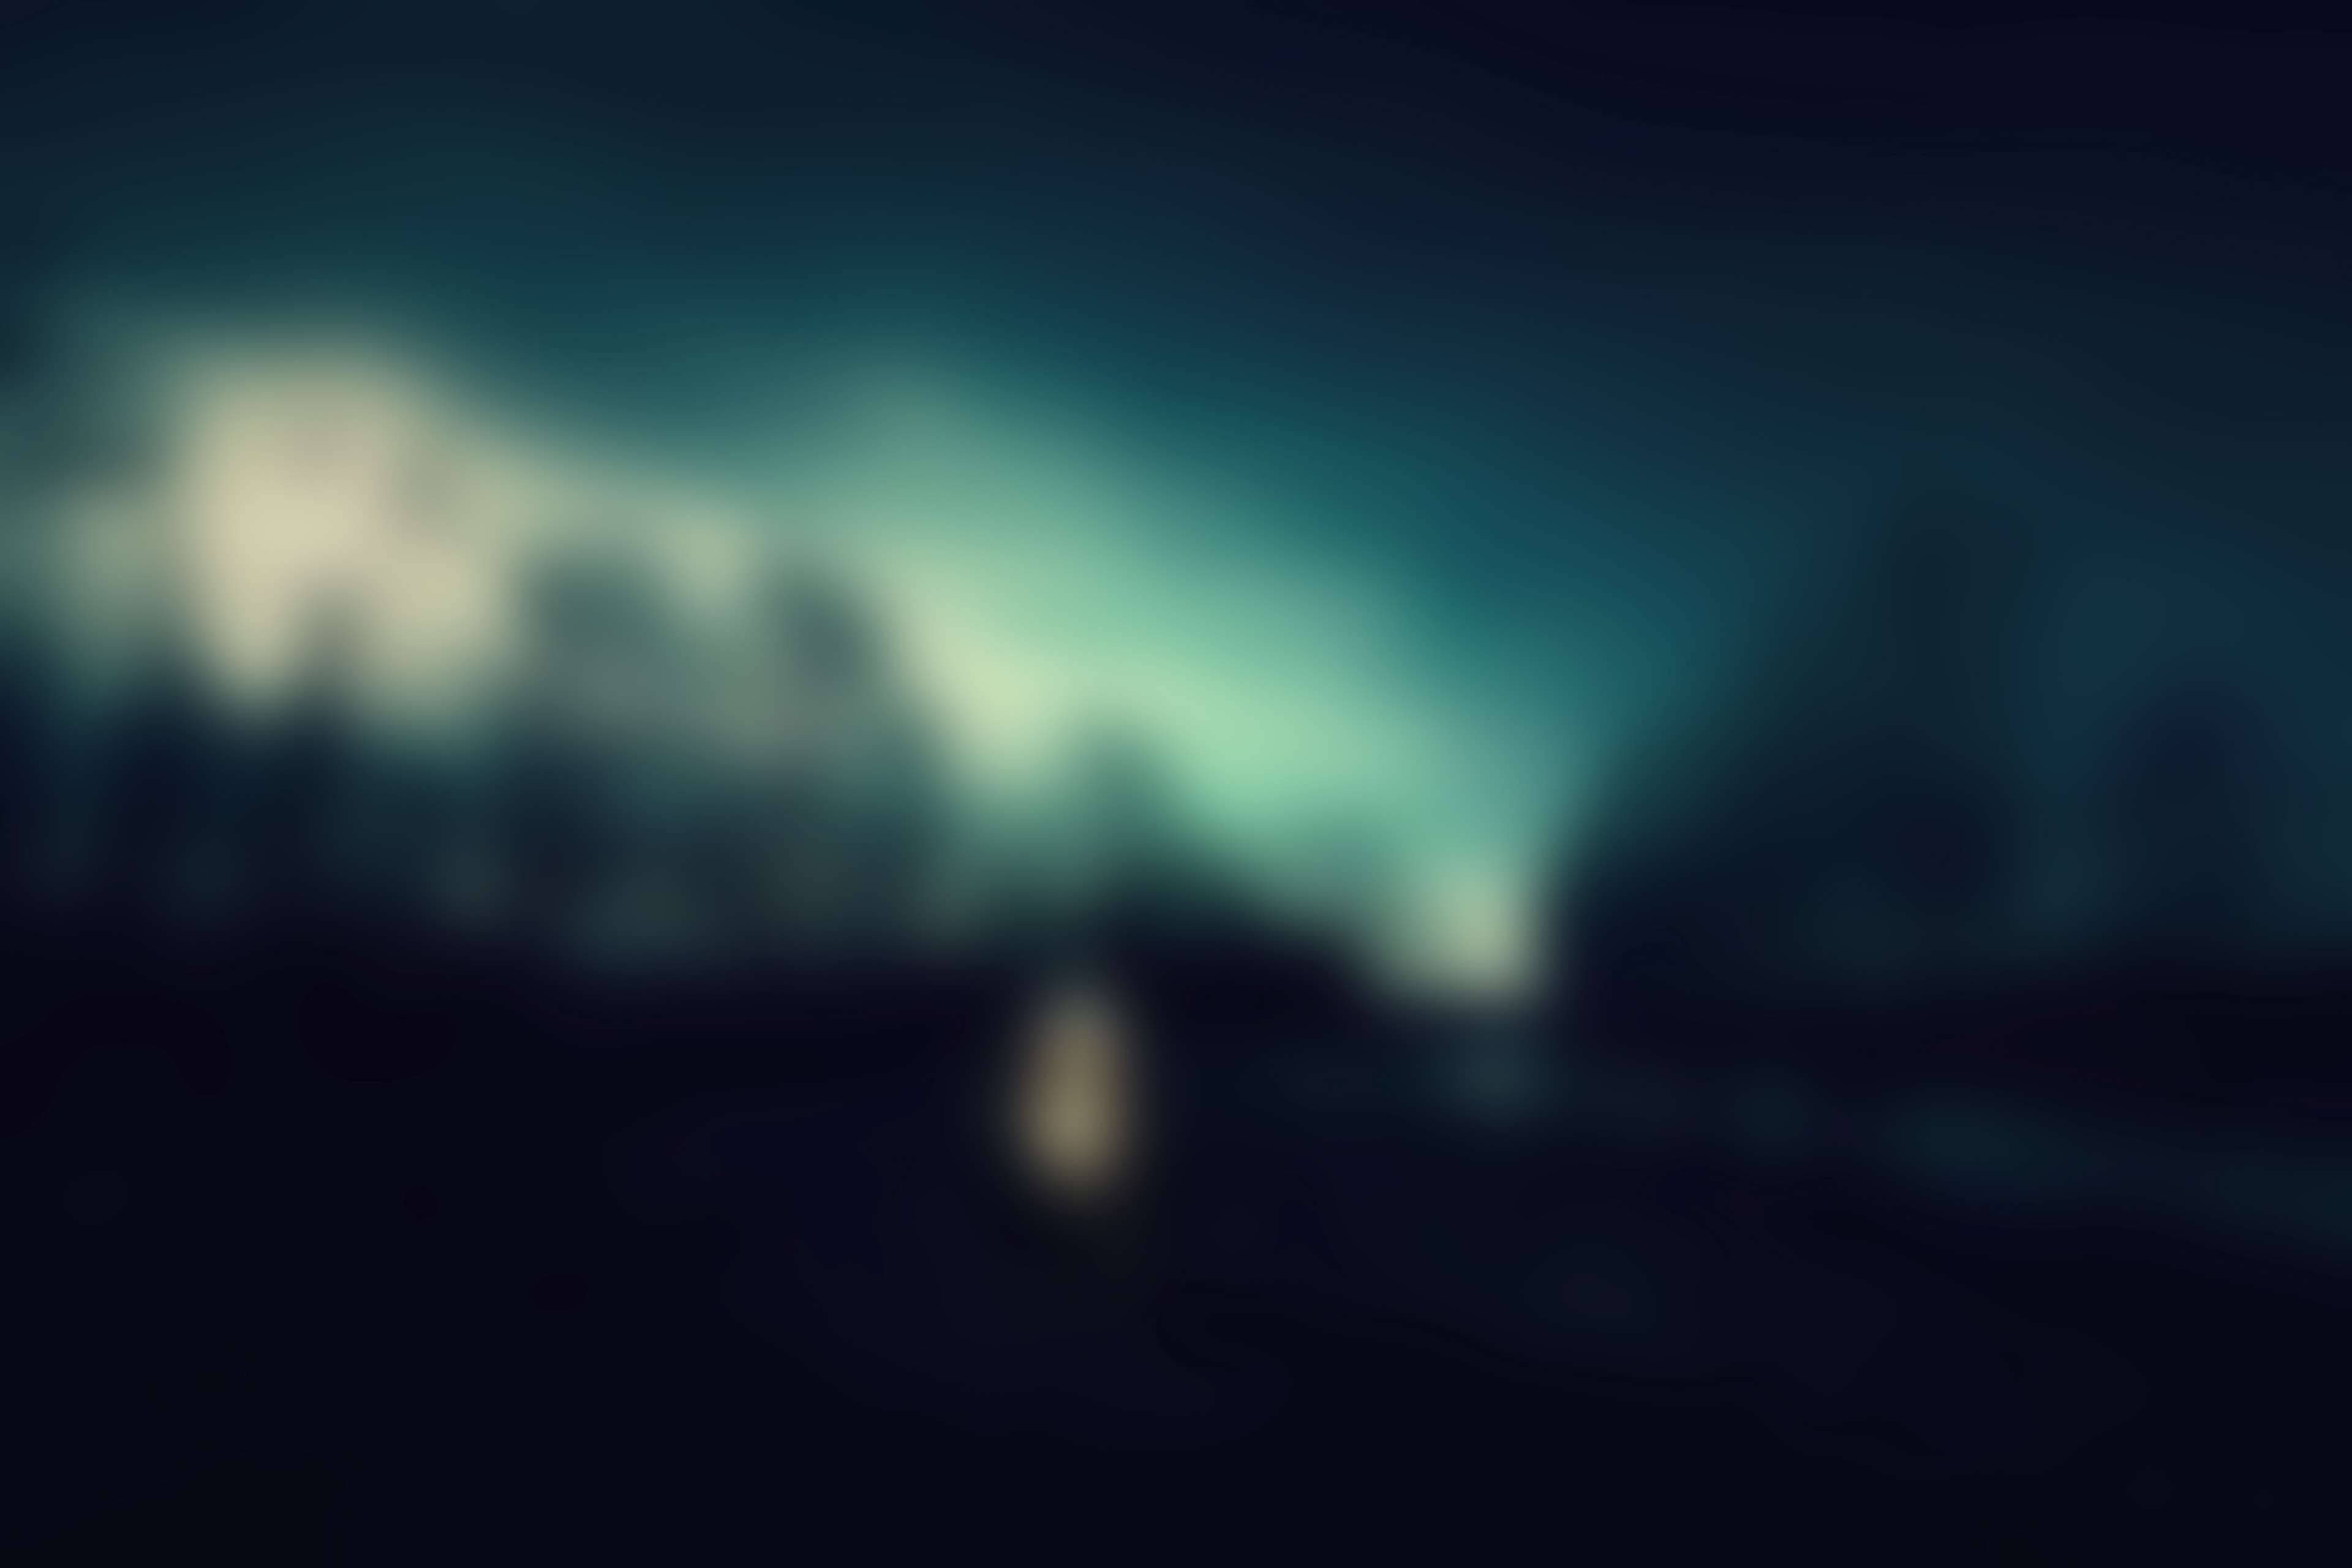 Background Blur Blurred Dark Night In 2019 Wallpaper